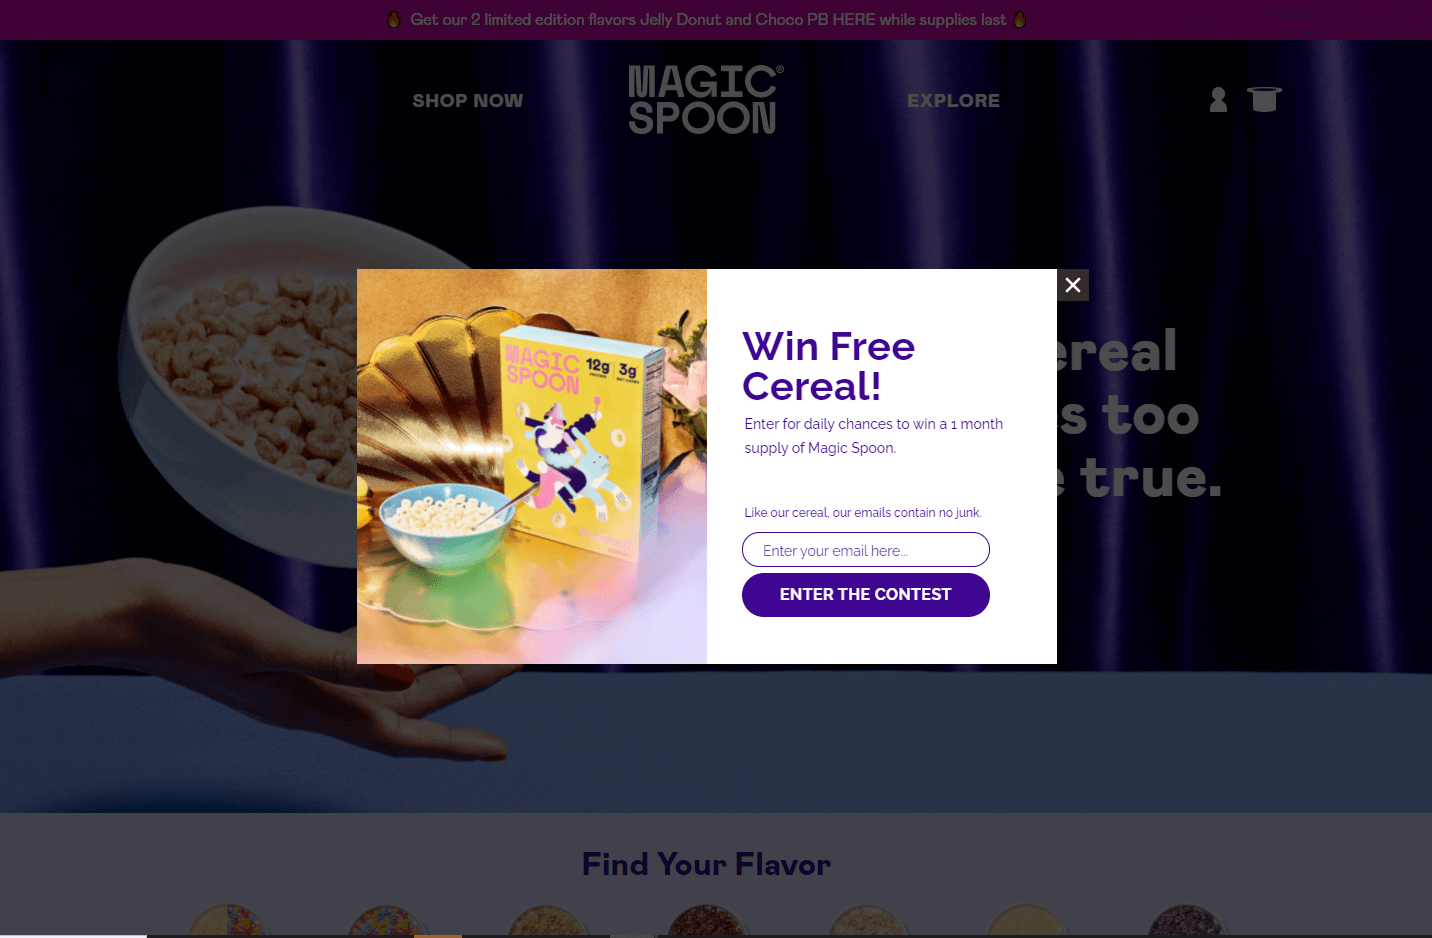 Magic Spoon email popup examples